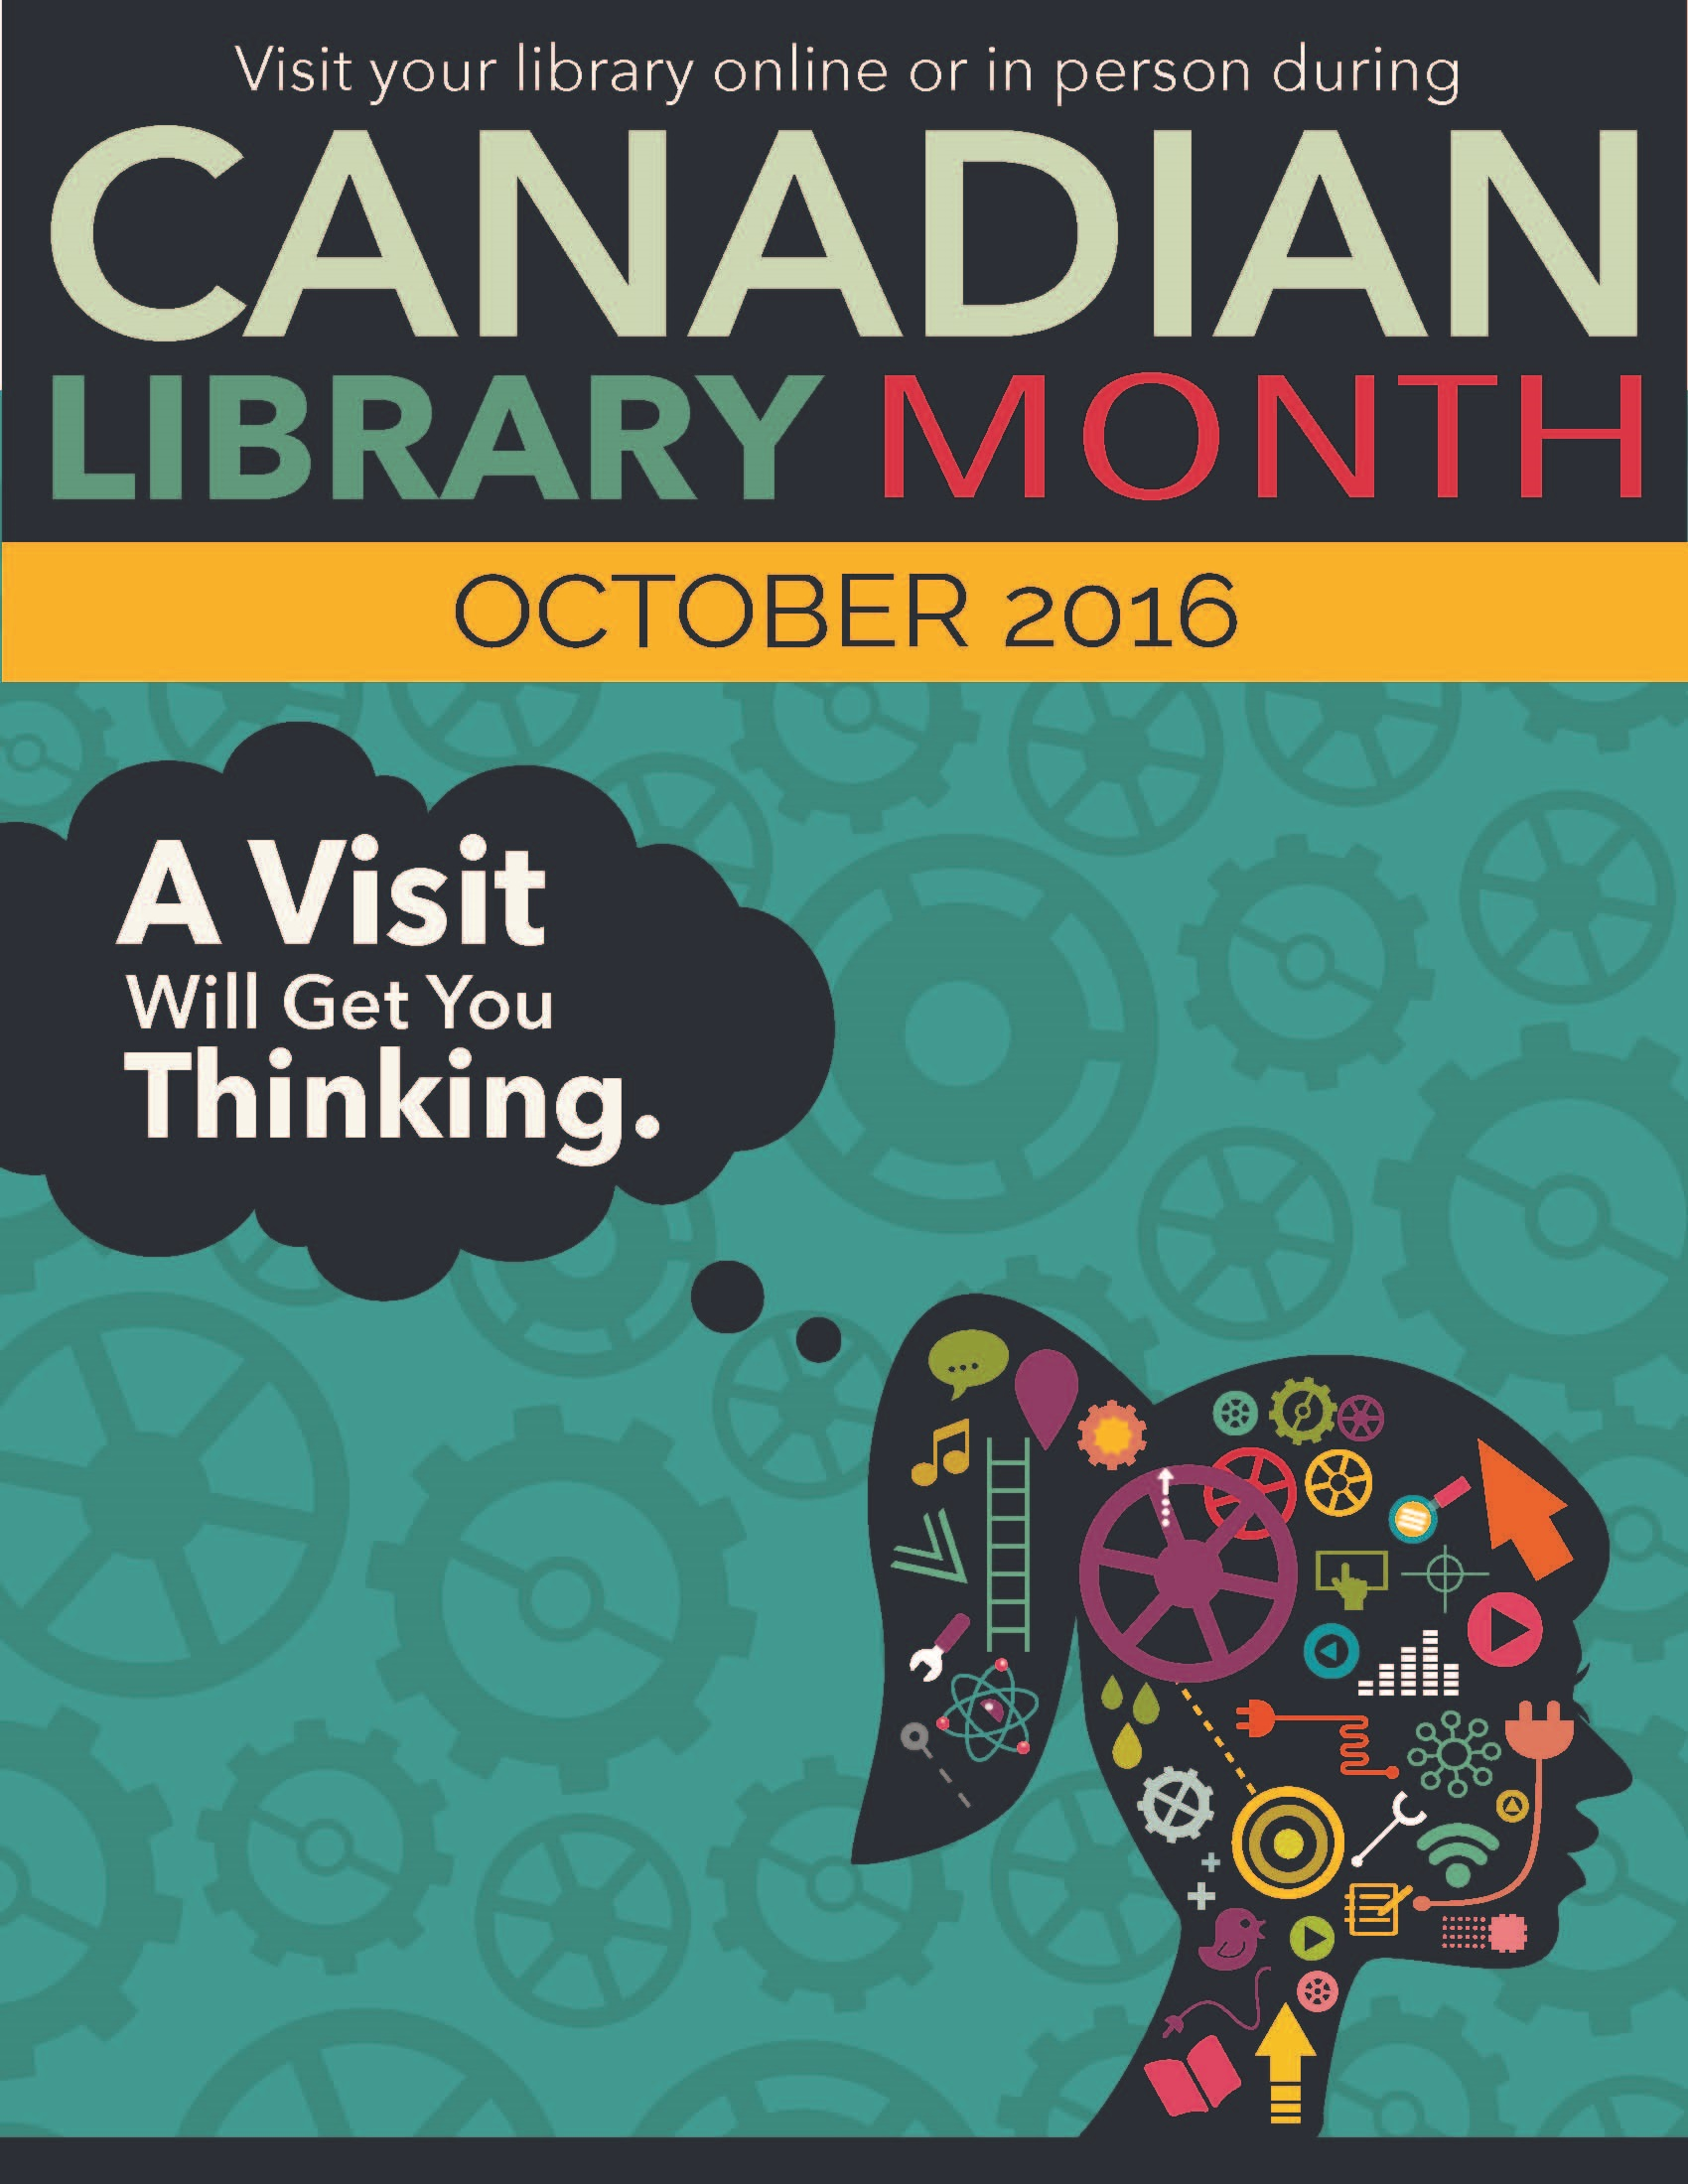 cdn-library-month-poster